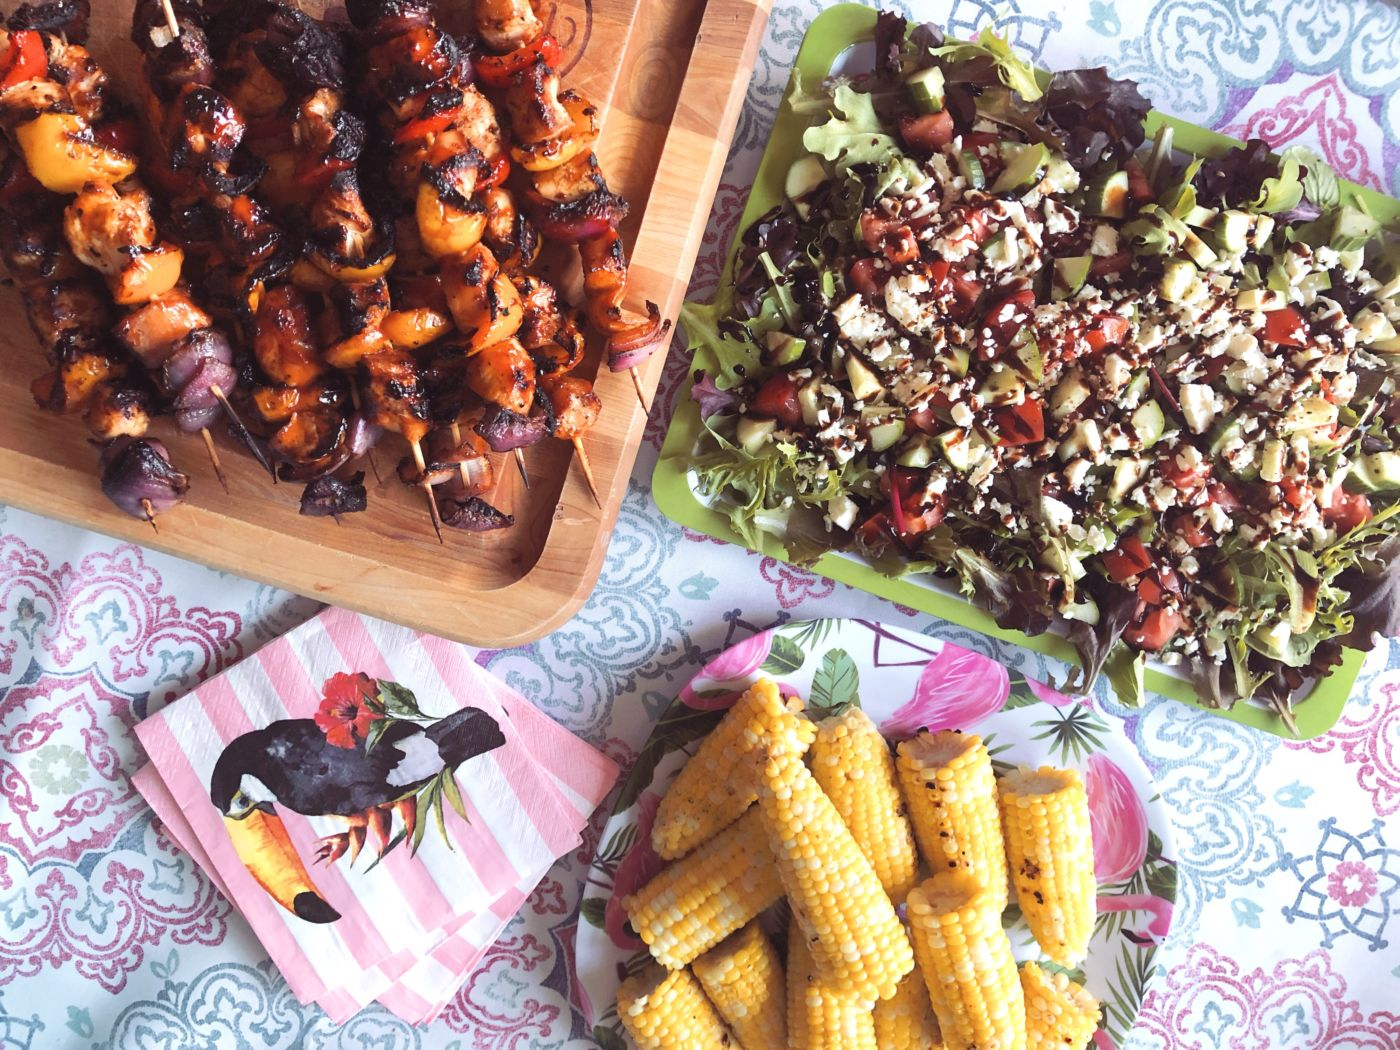 food options for summer entertaining